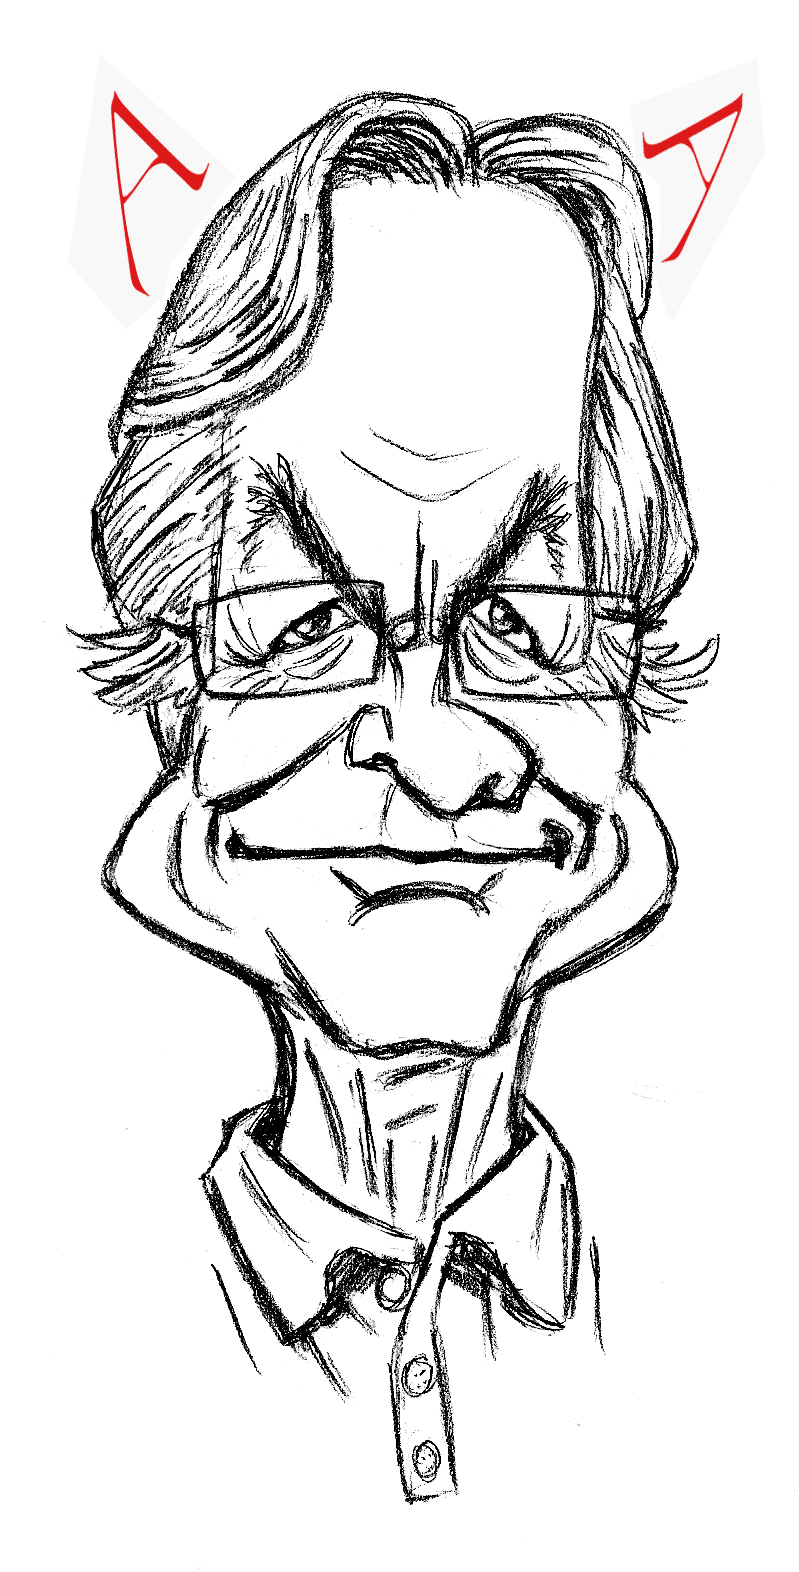 Richard Dawkins by SamSaxton